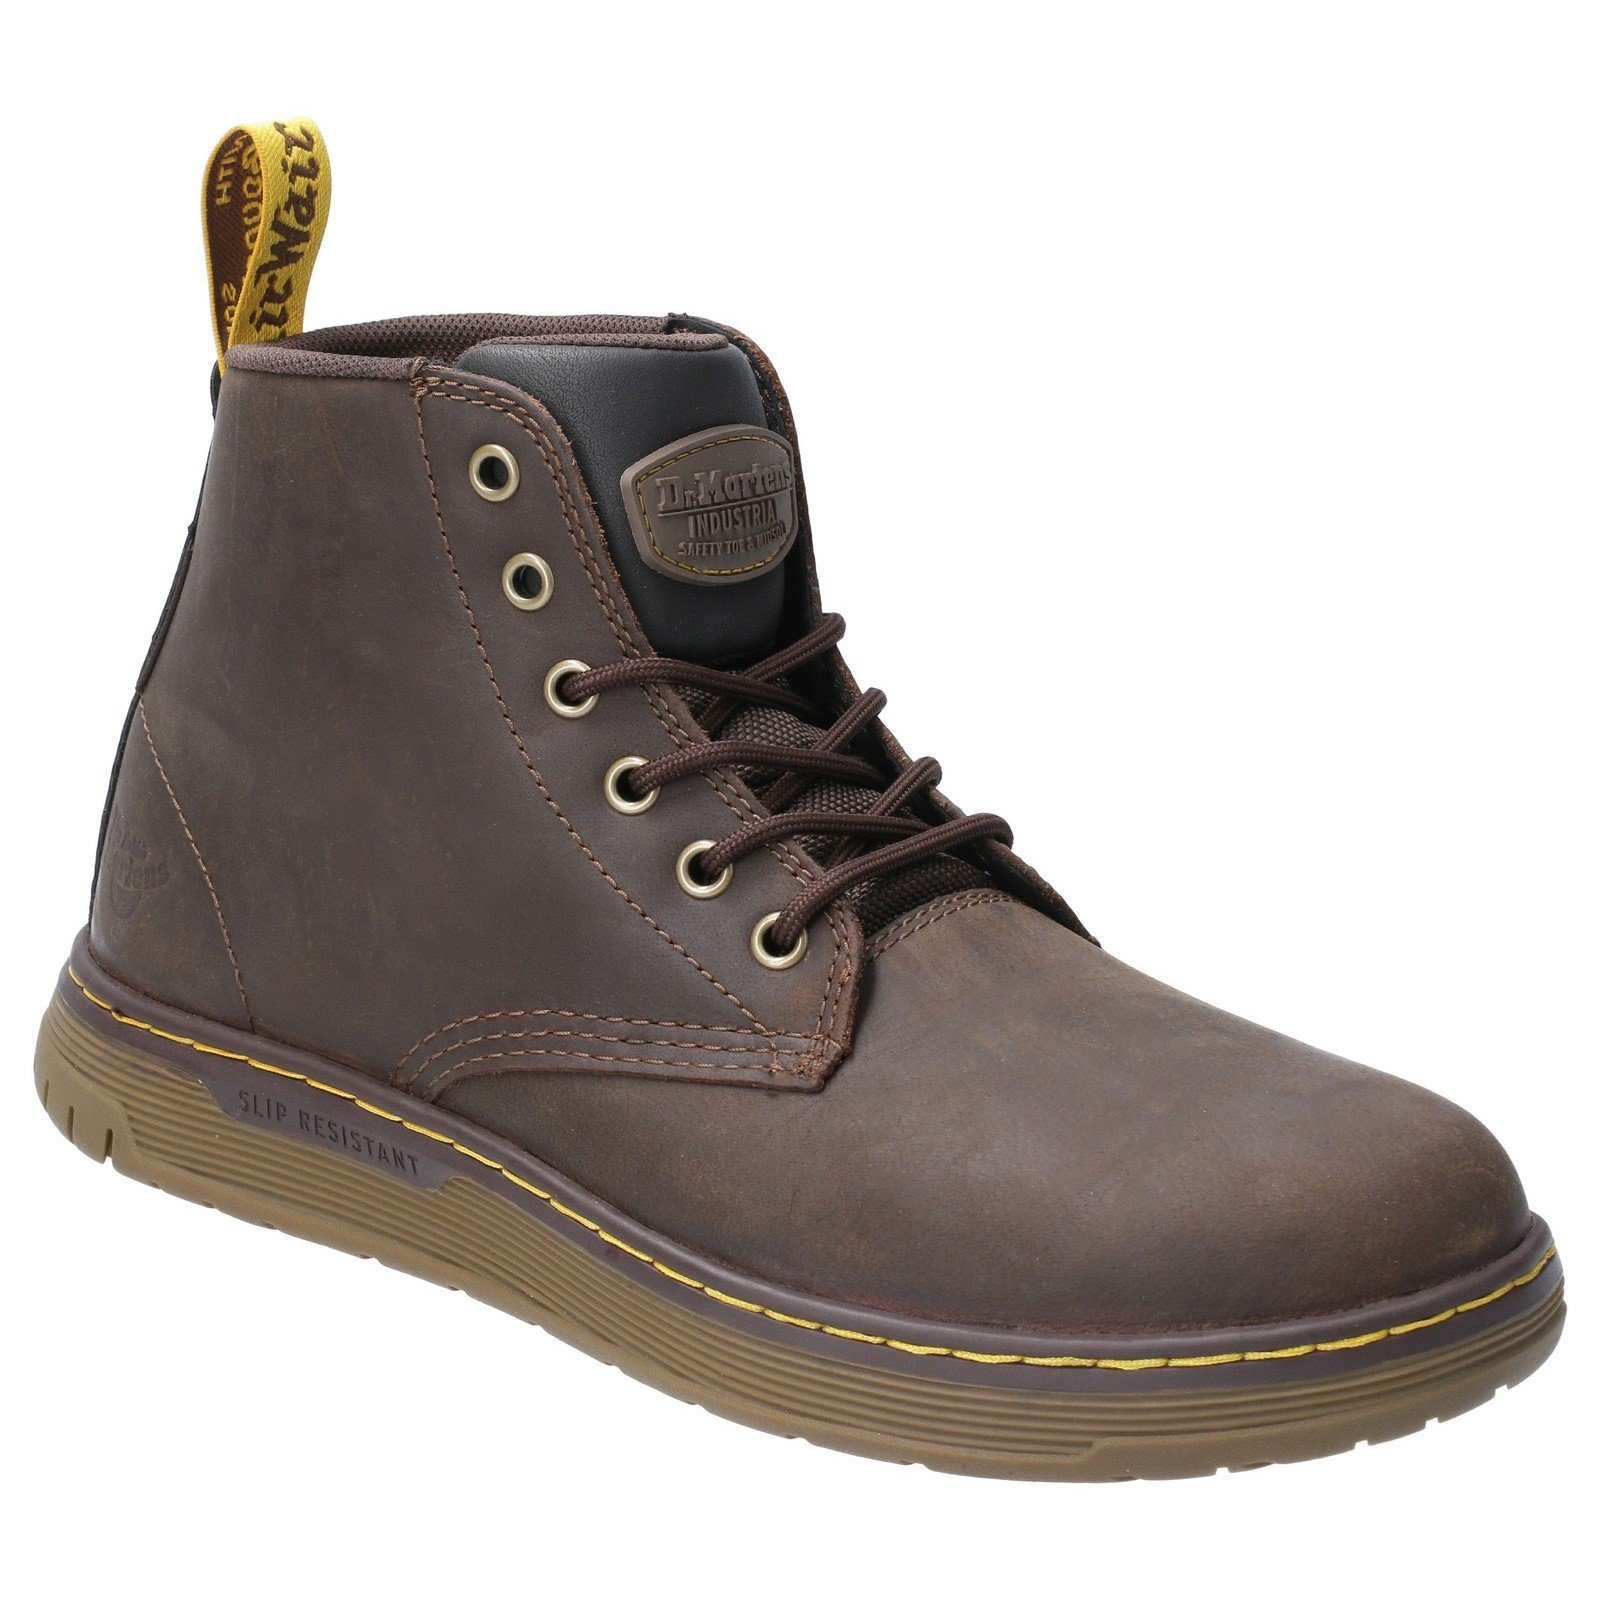 Dr Martens Unisex Ledger Lace Up Safety Boot Brown 29501 - Brown 9